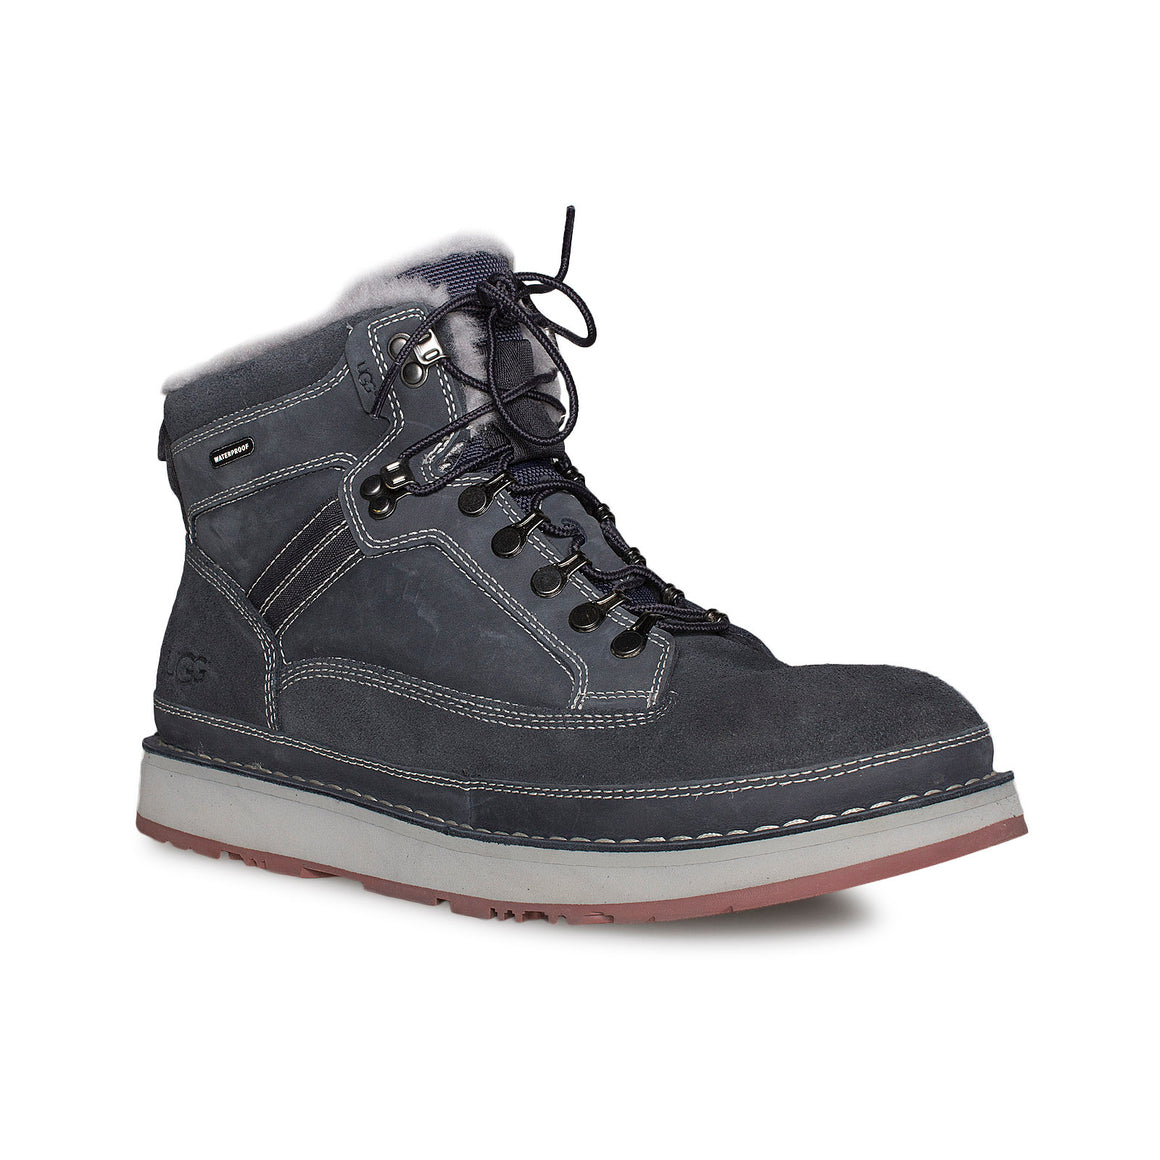 UGG Avalanche Hiker Boot True Navy - Men's